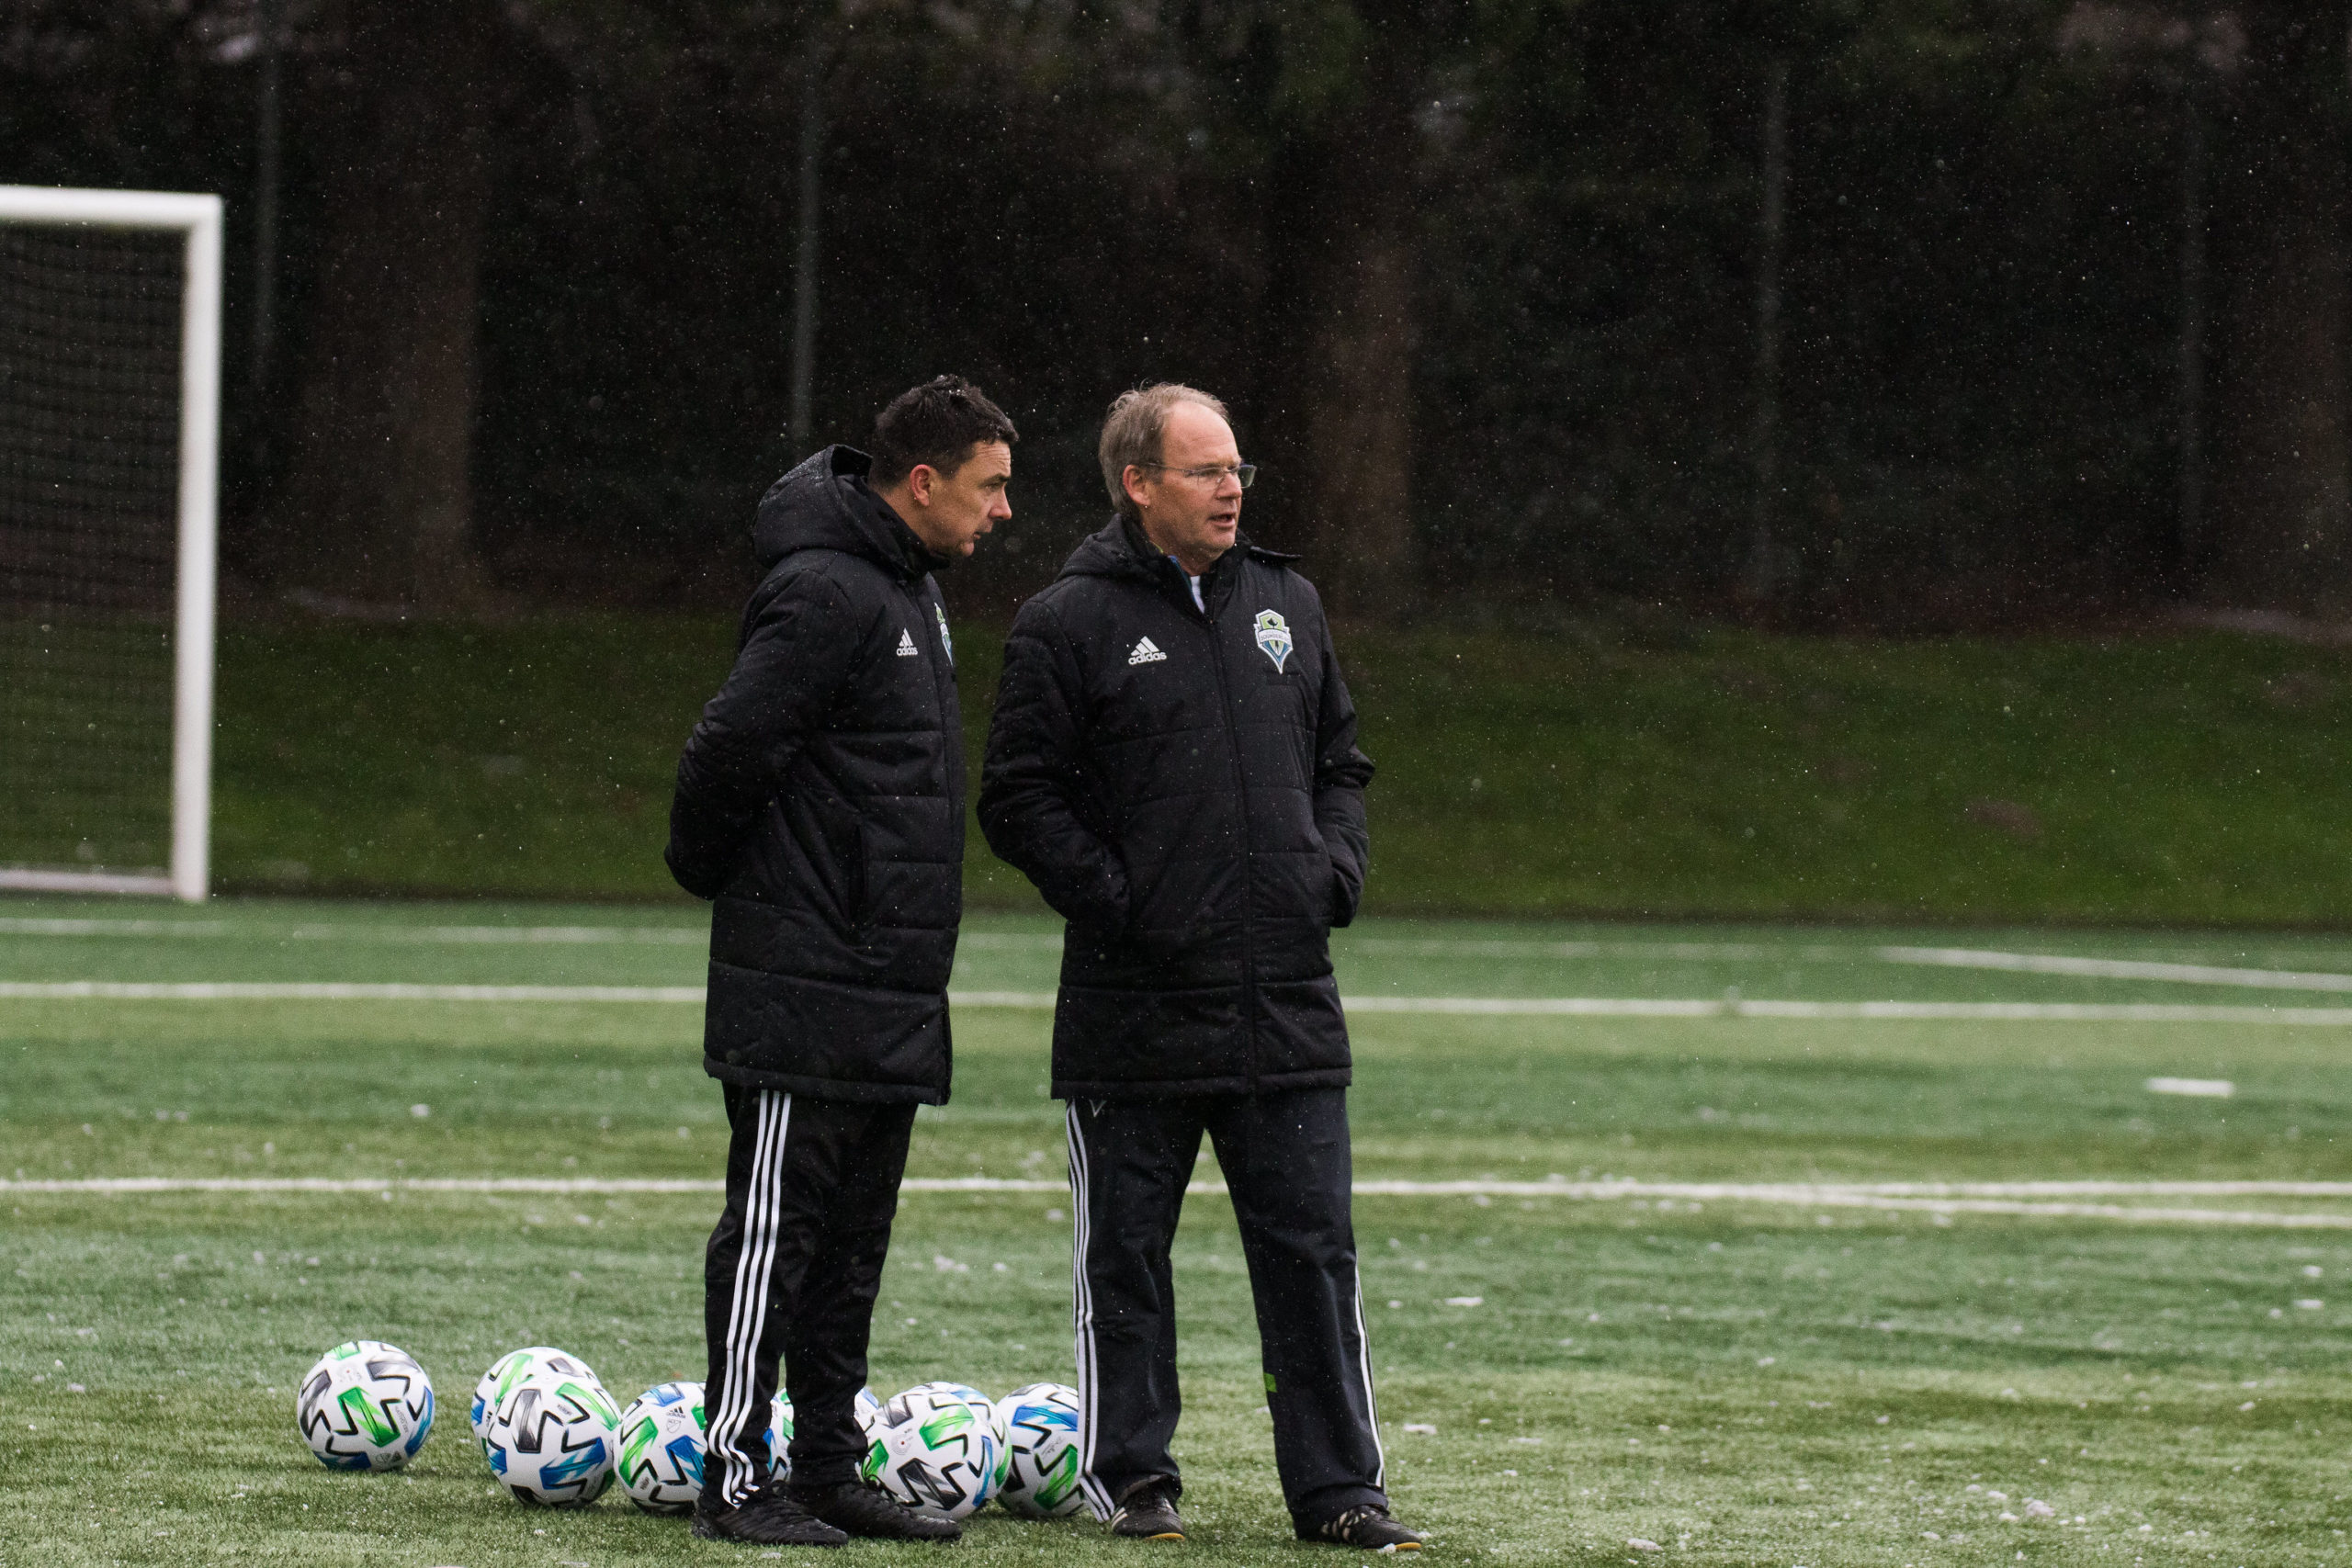 Tacoma Defiance coach Chris Little and Seattle Sounders head coach Brian Schmetzer survey their two squads during preseason